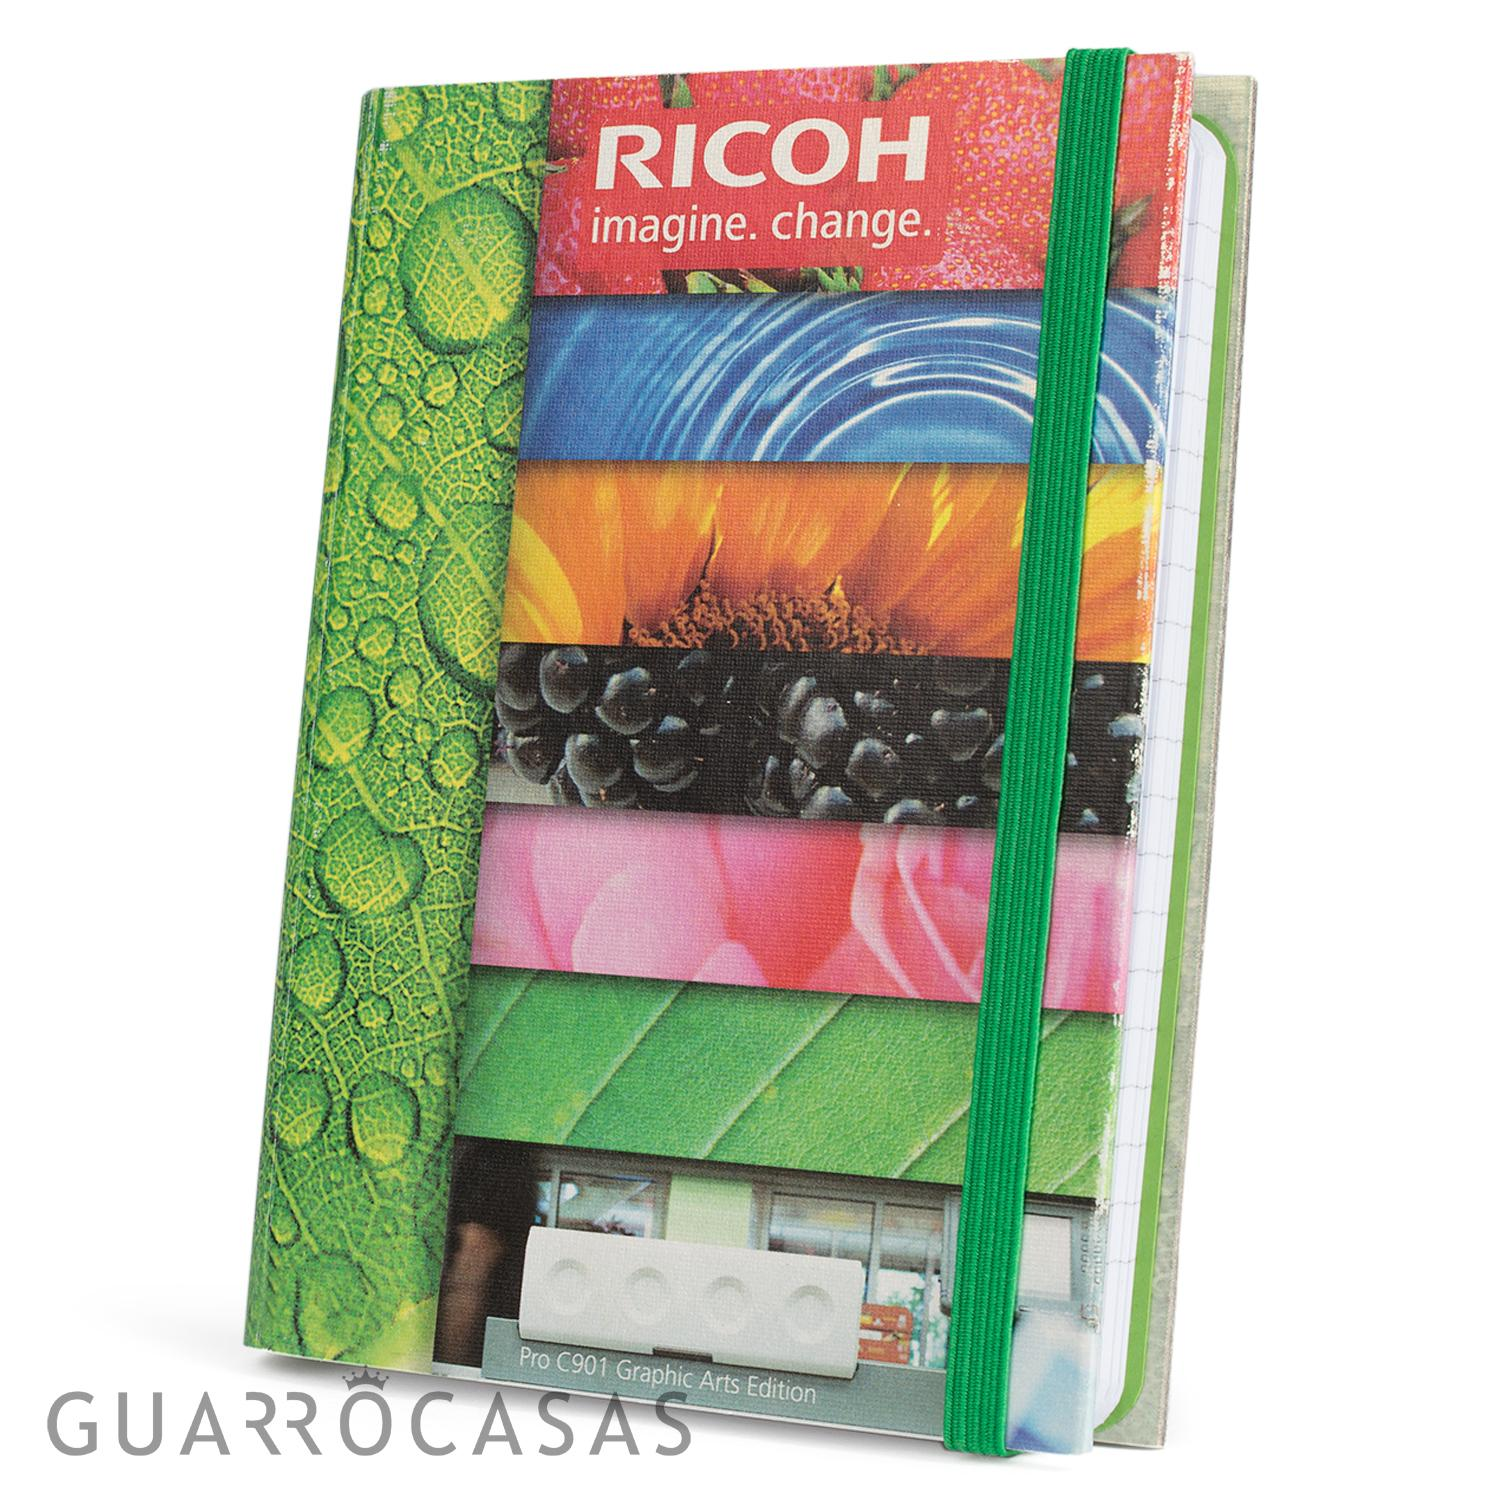 Ricoh's Notebook